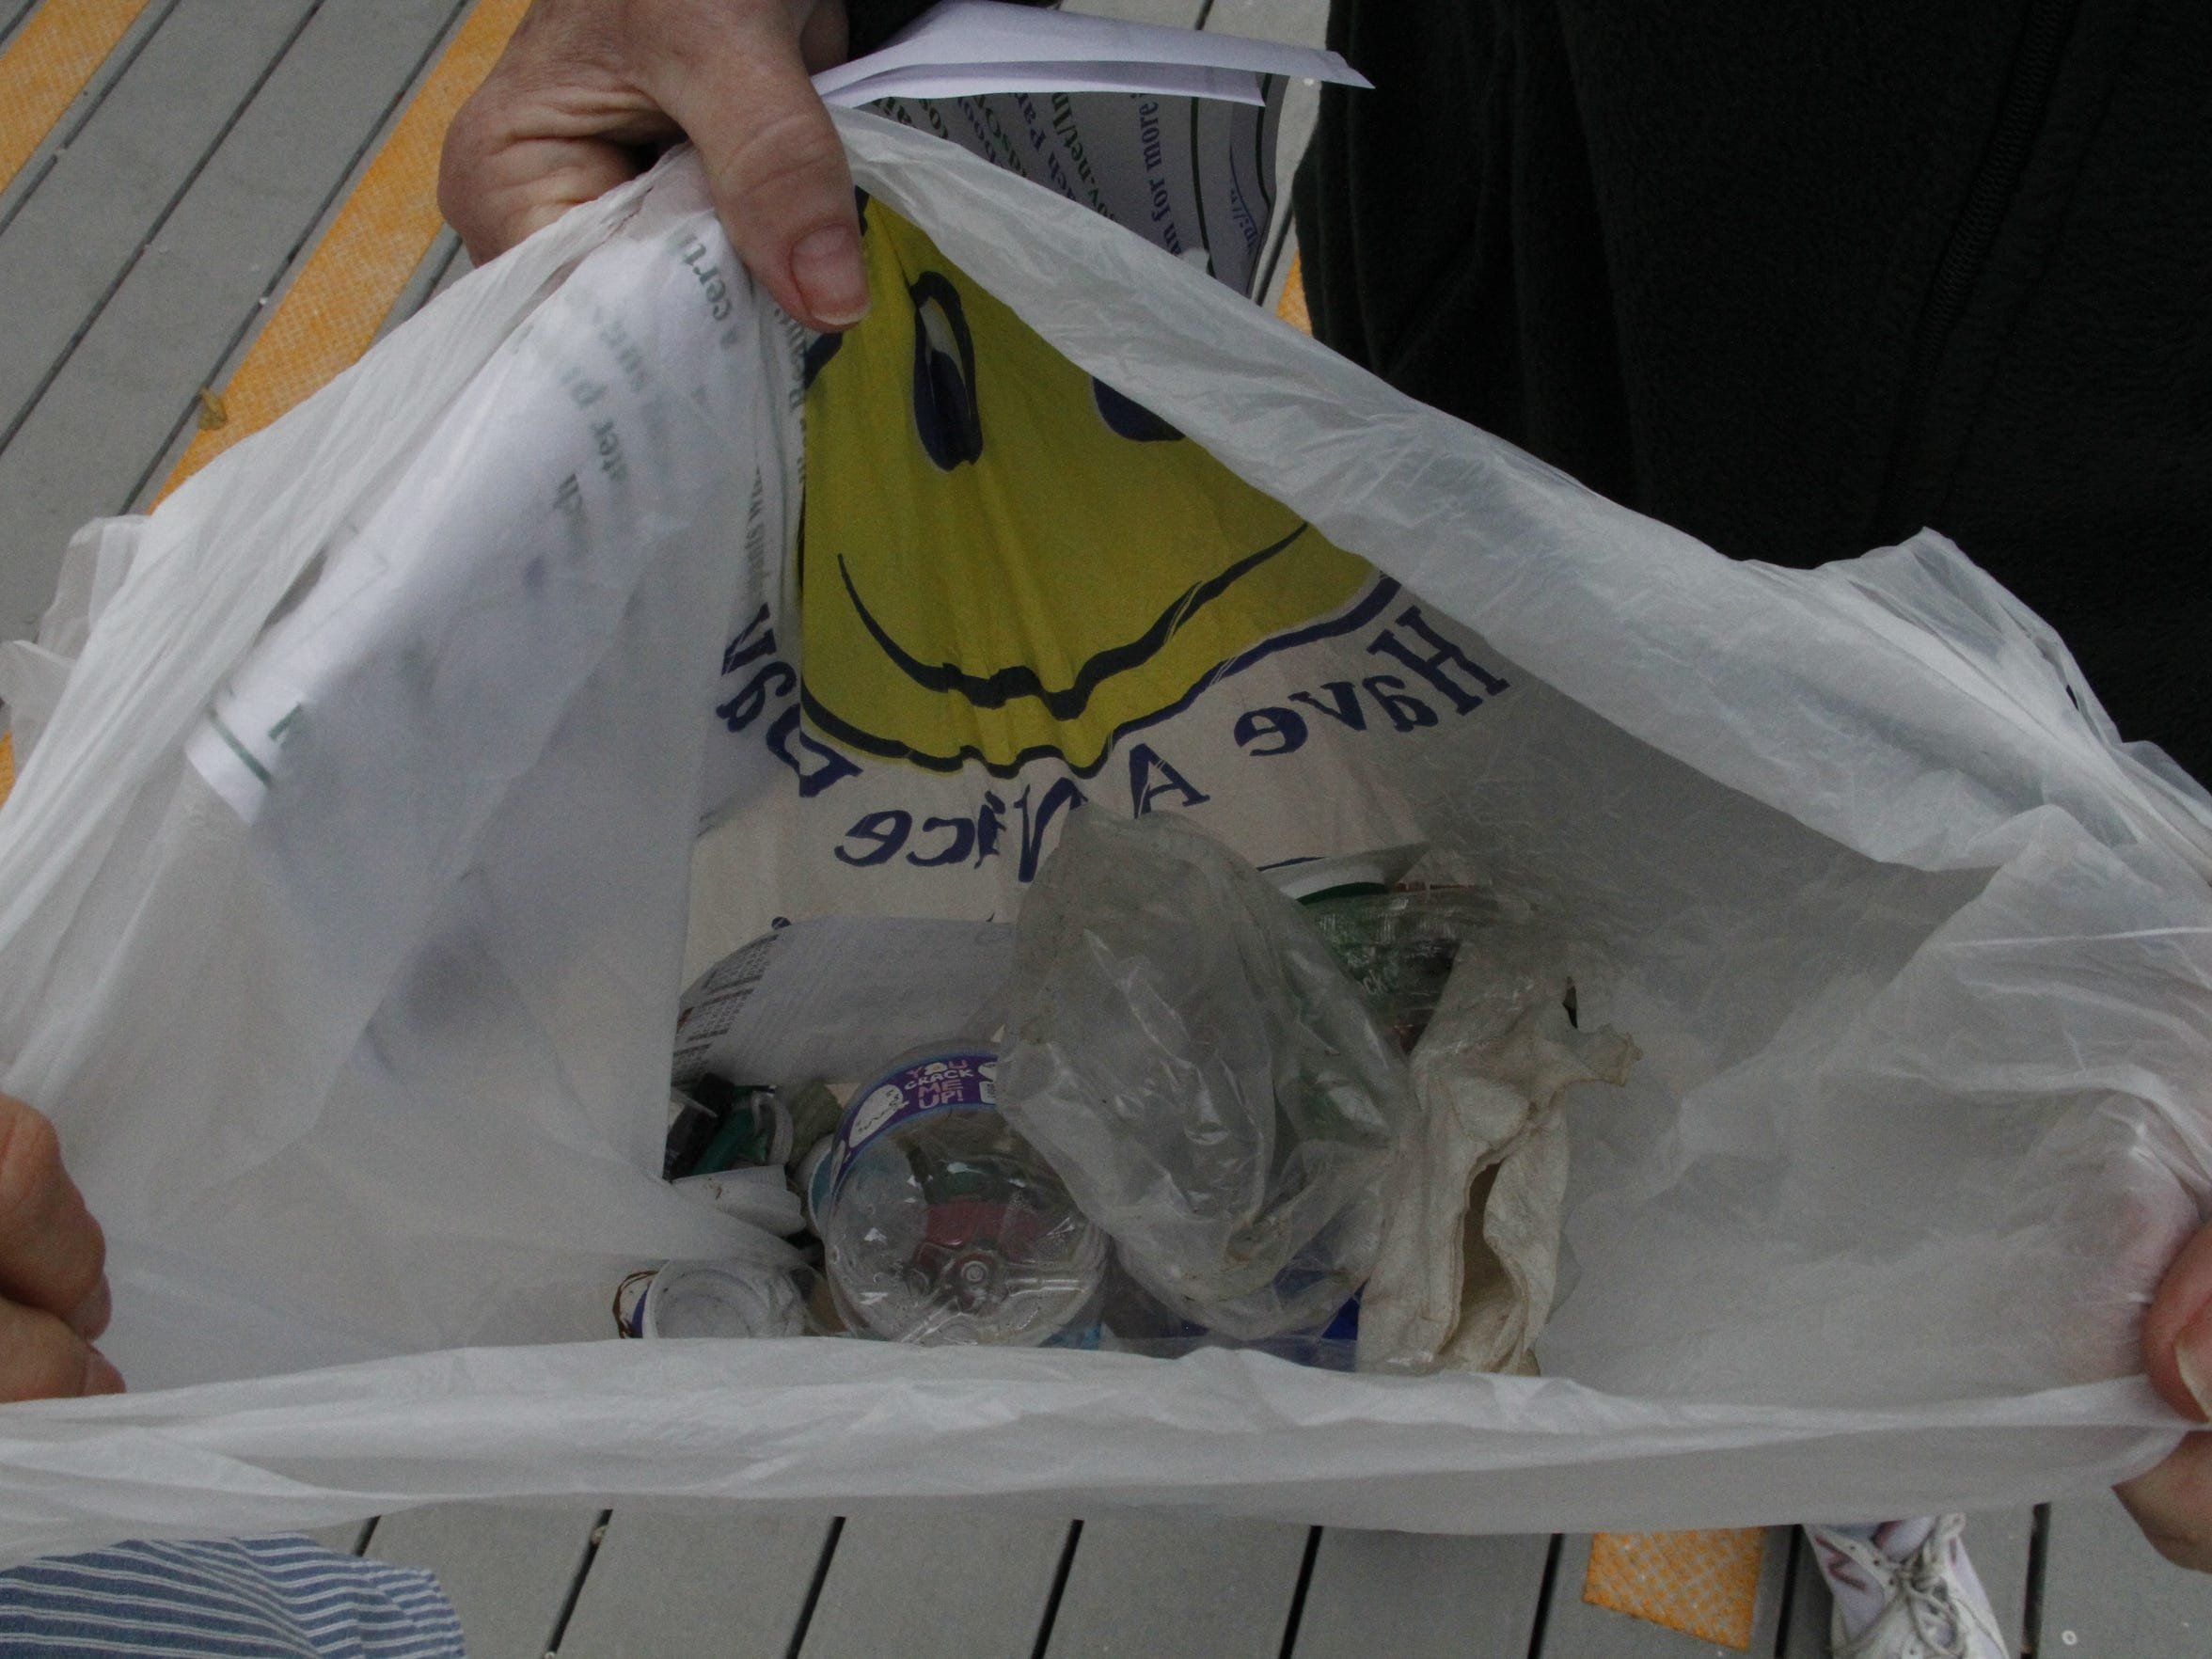 A volunteer collected a grocery bag full of trash within